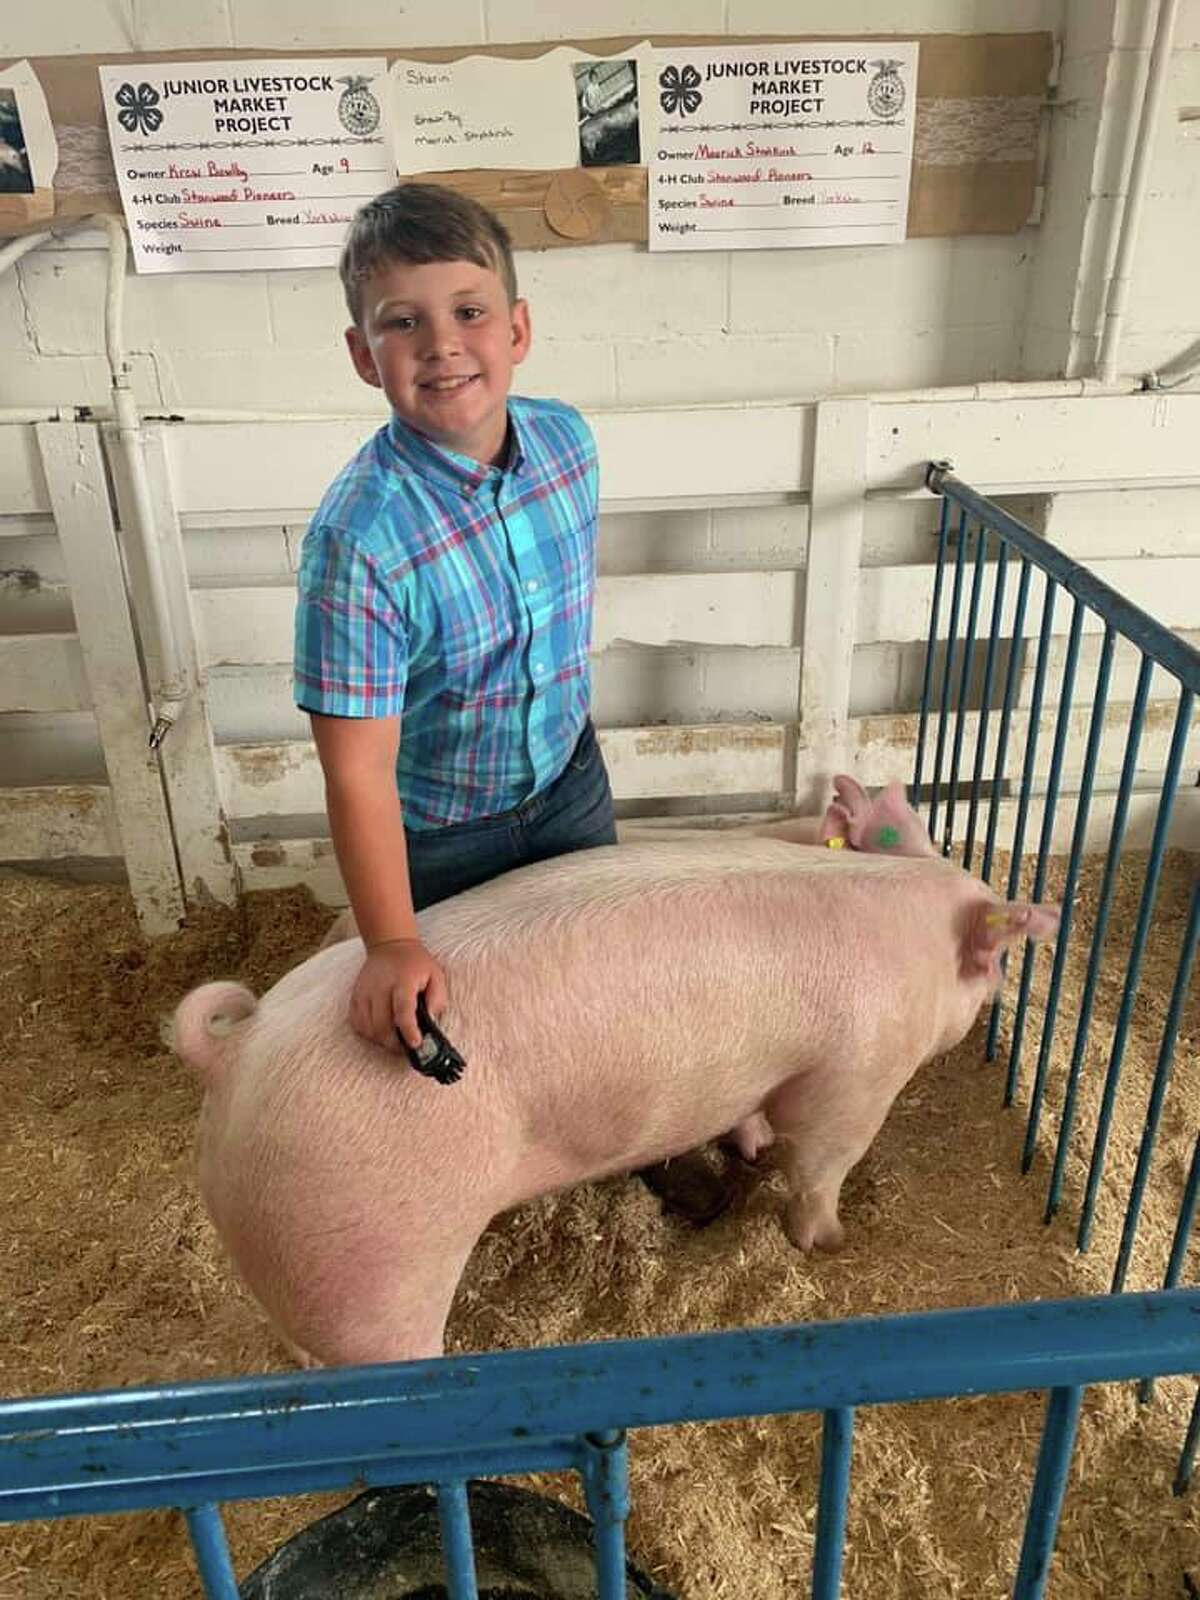 Krew Bowlby. 10 years old and shows pigs. Has been with Stanwood Pioneer for 5 years.